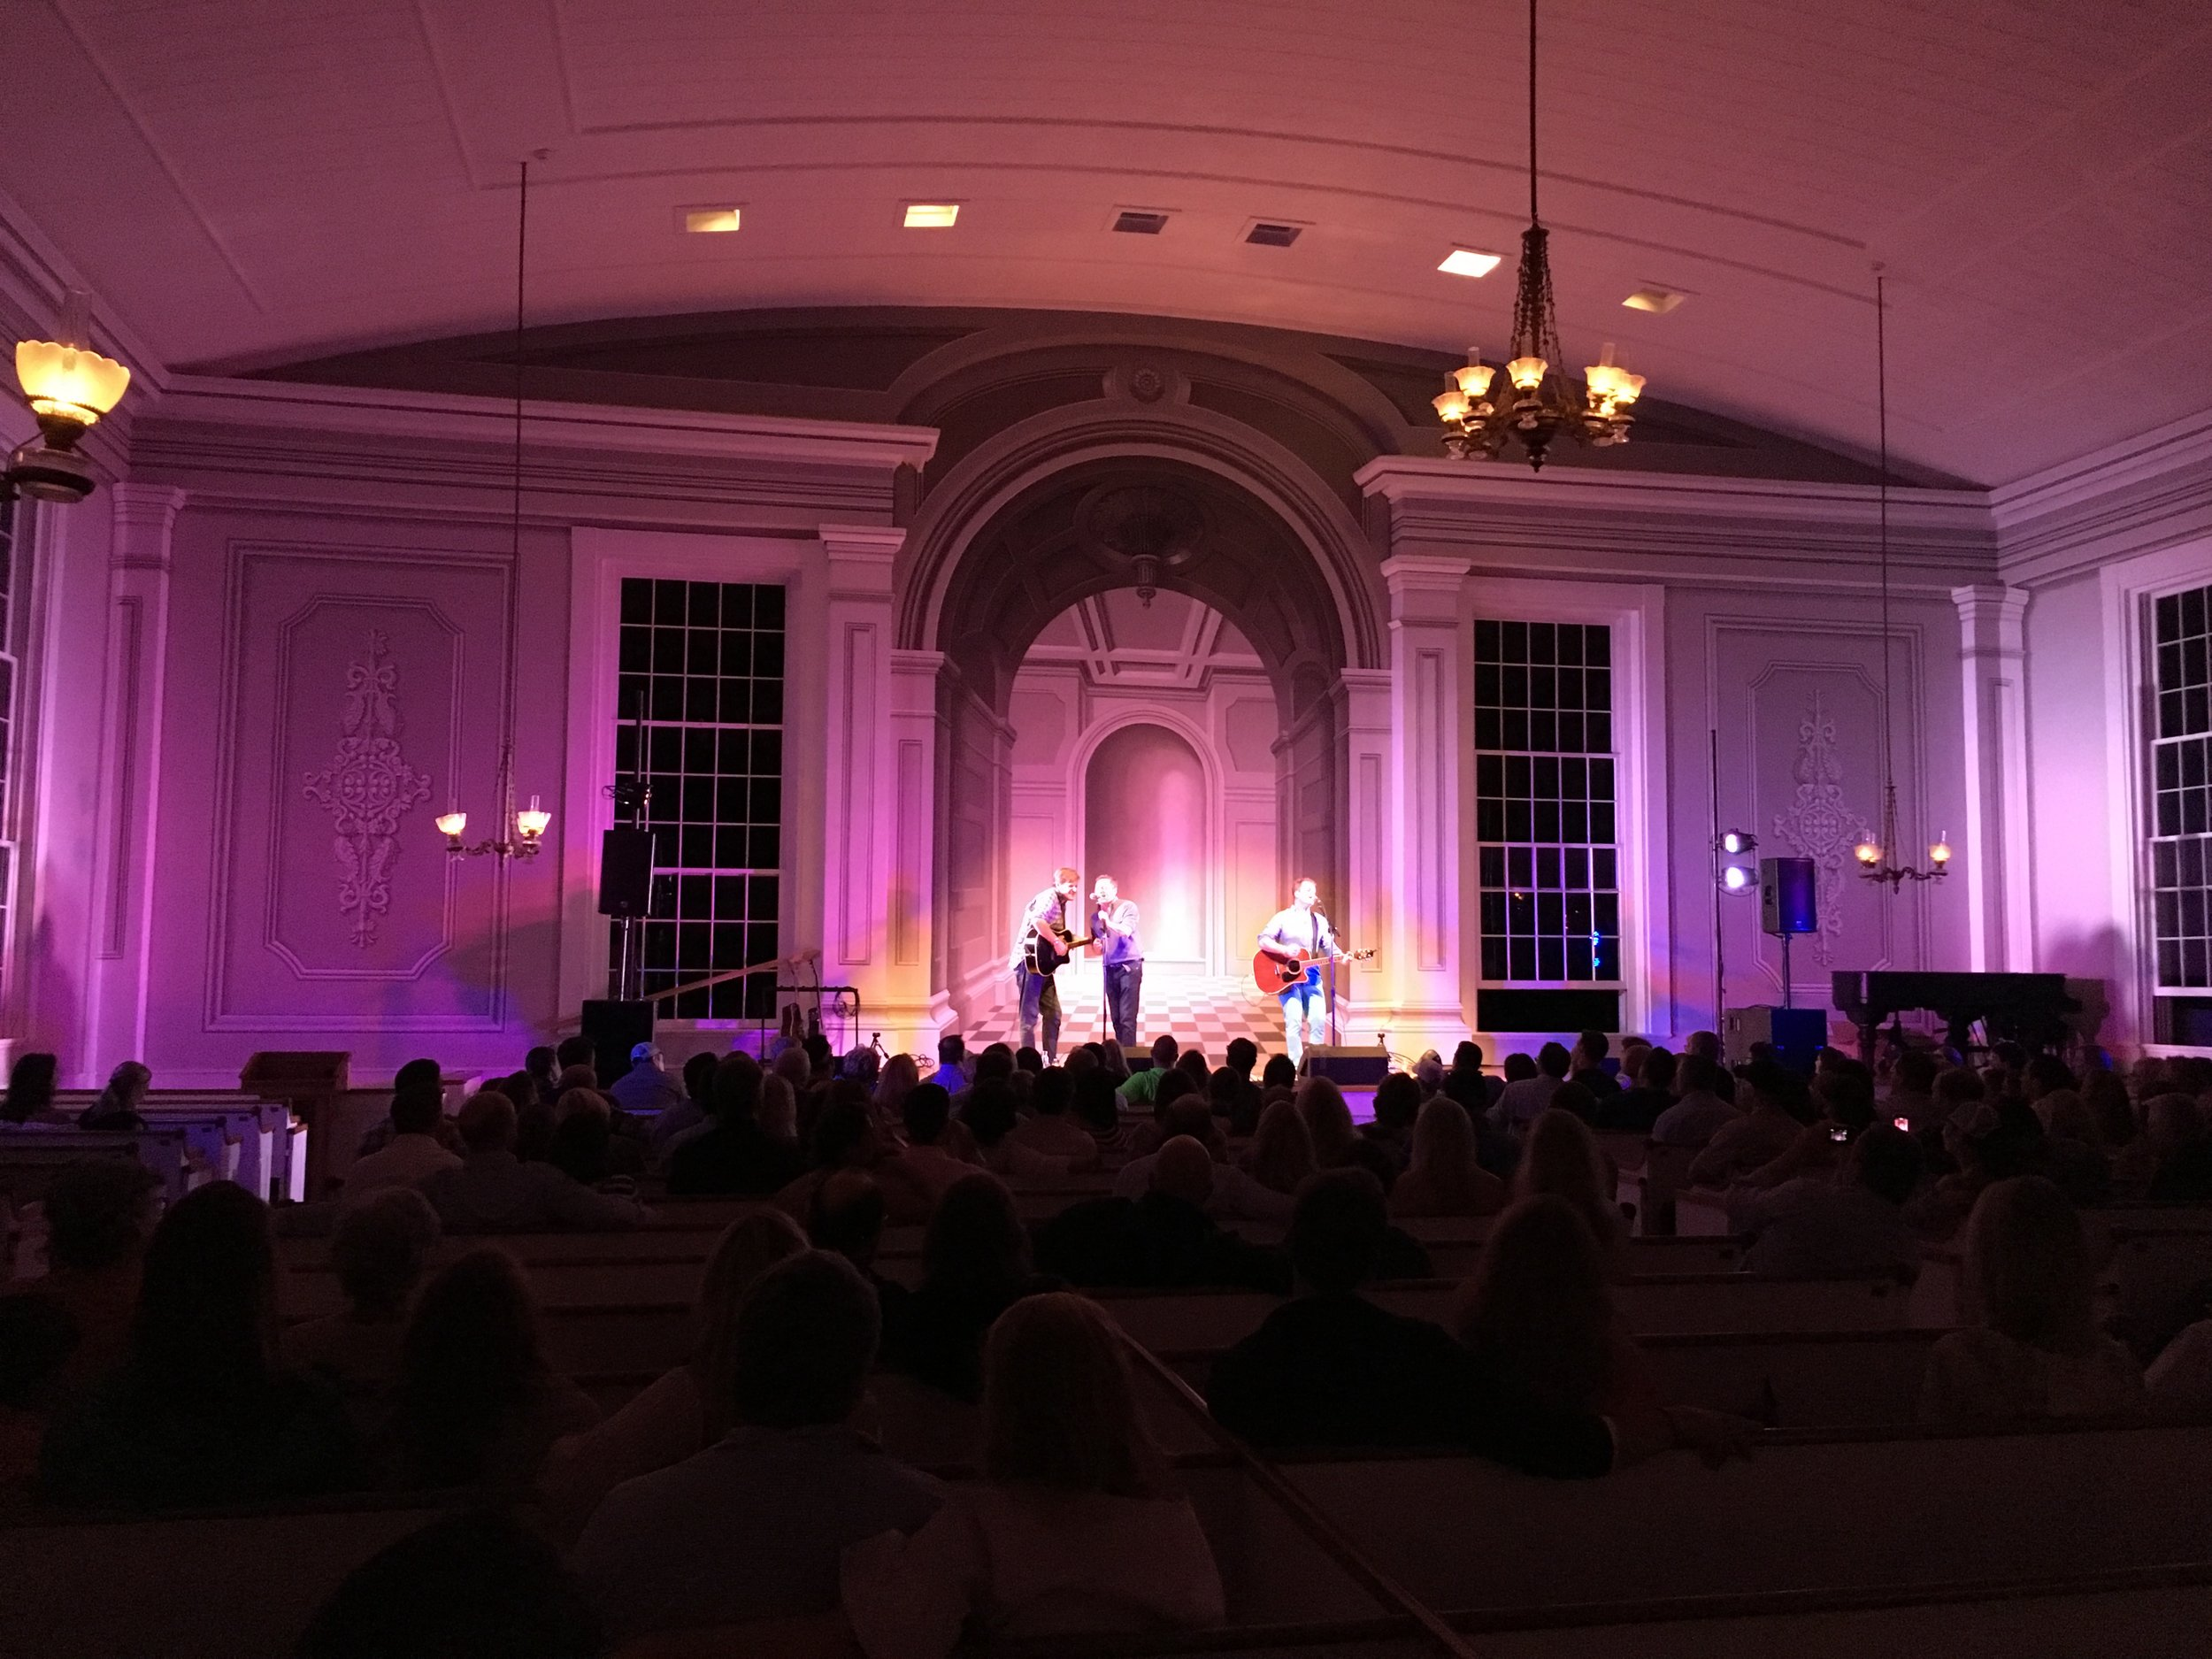 Audio and lighting for a concert in a historic church